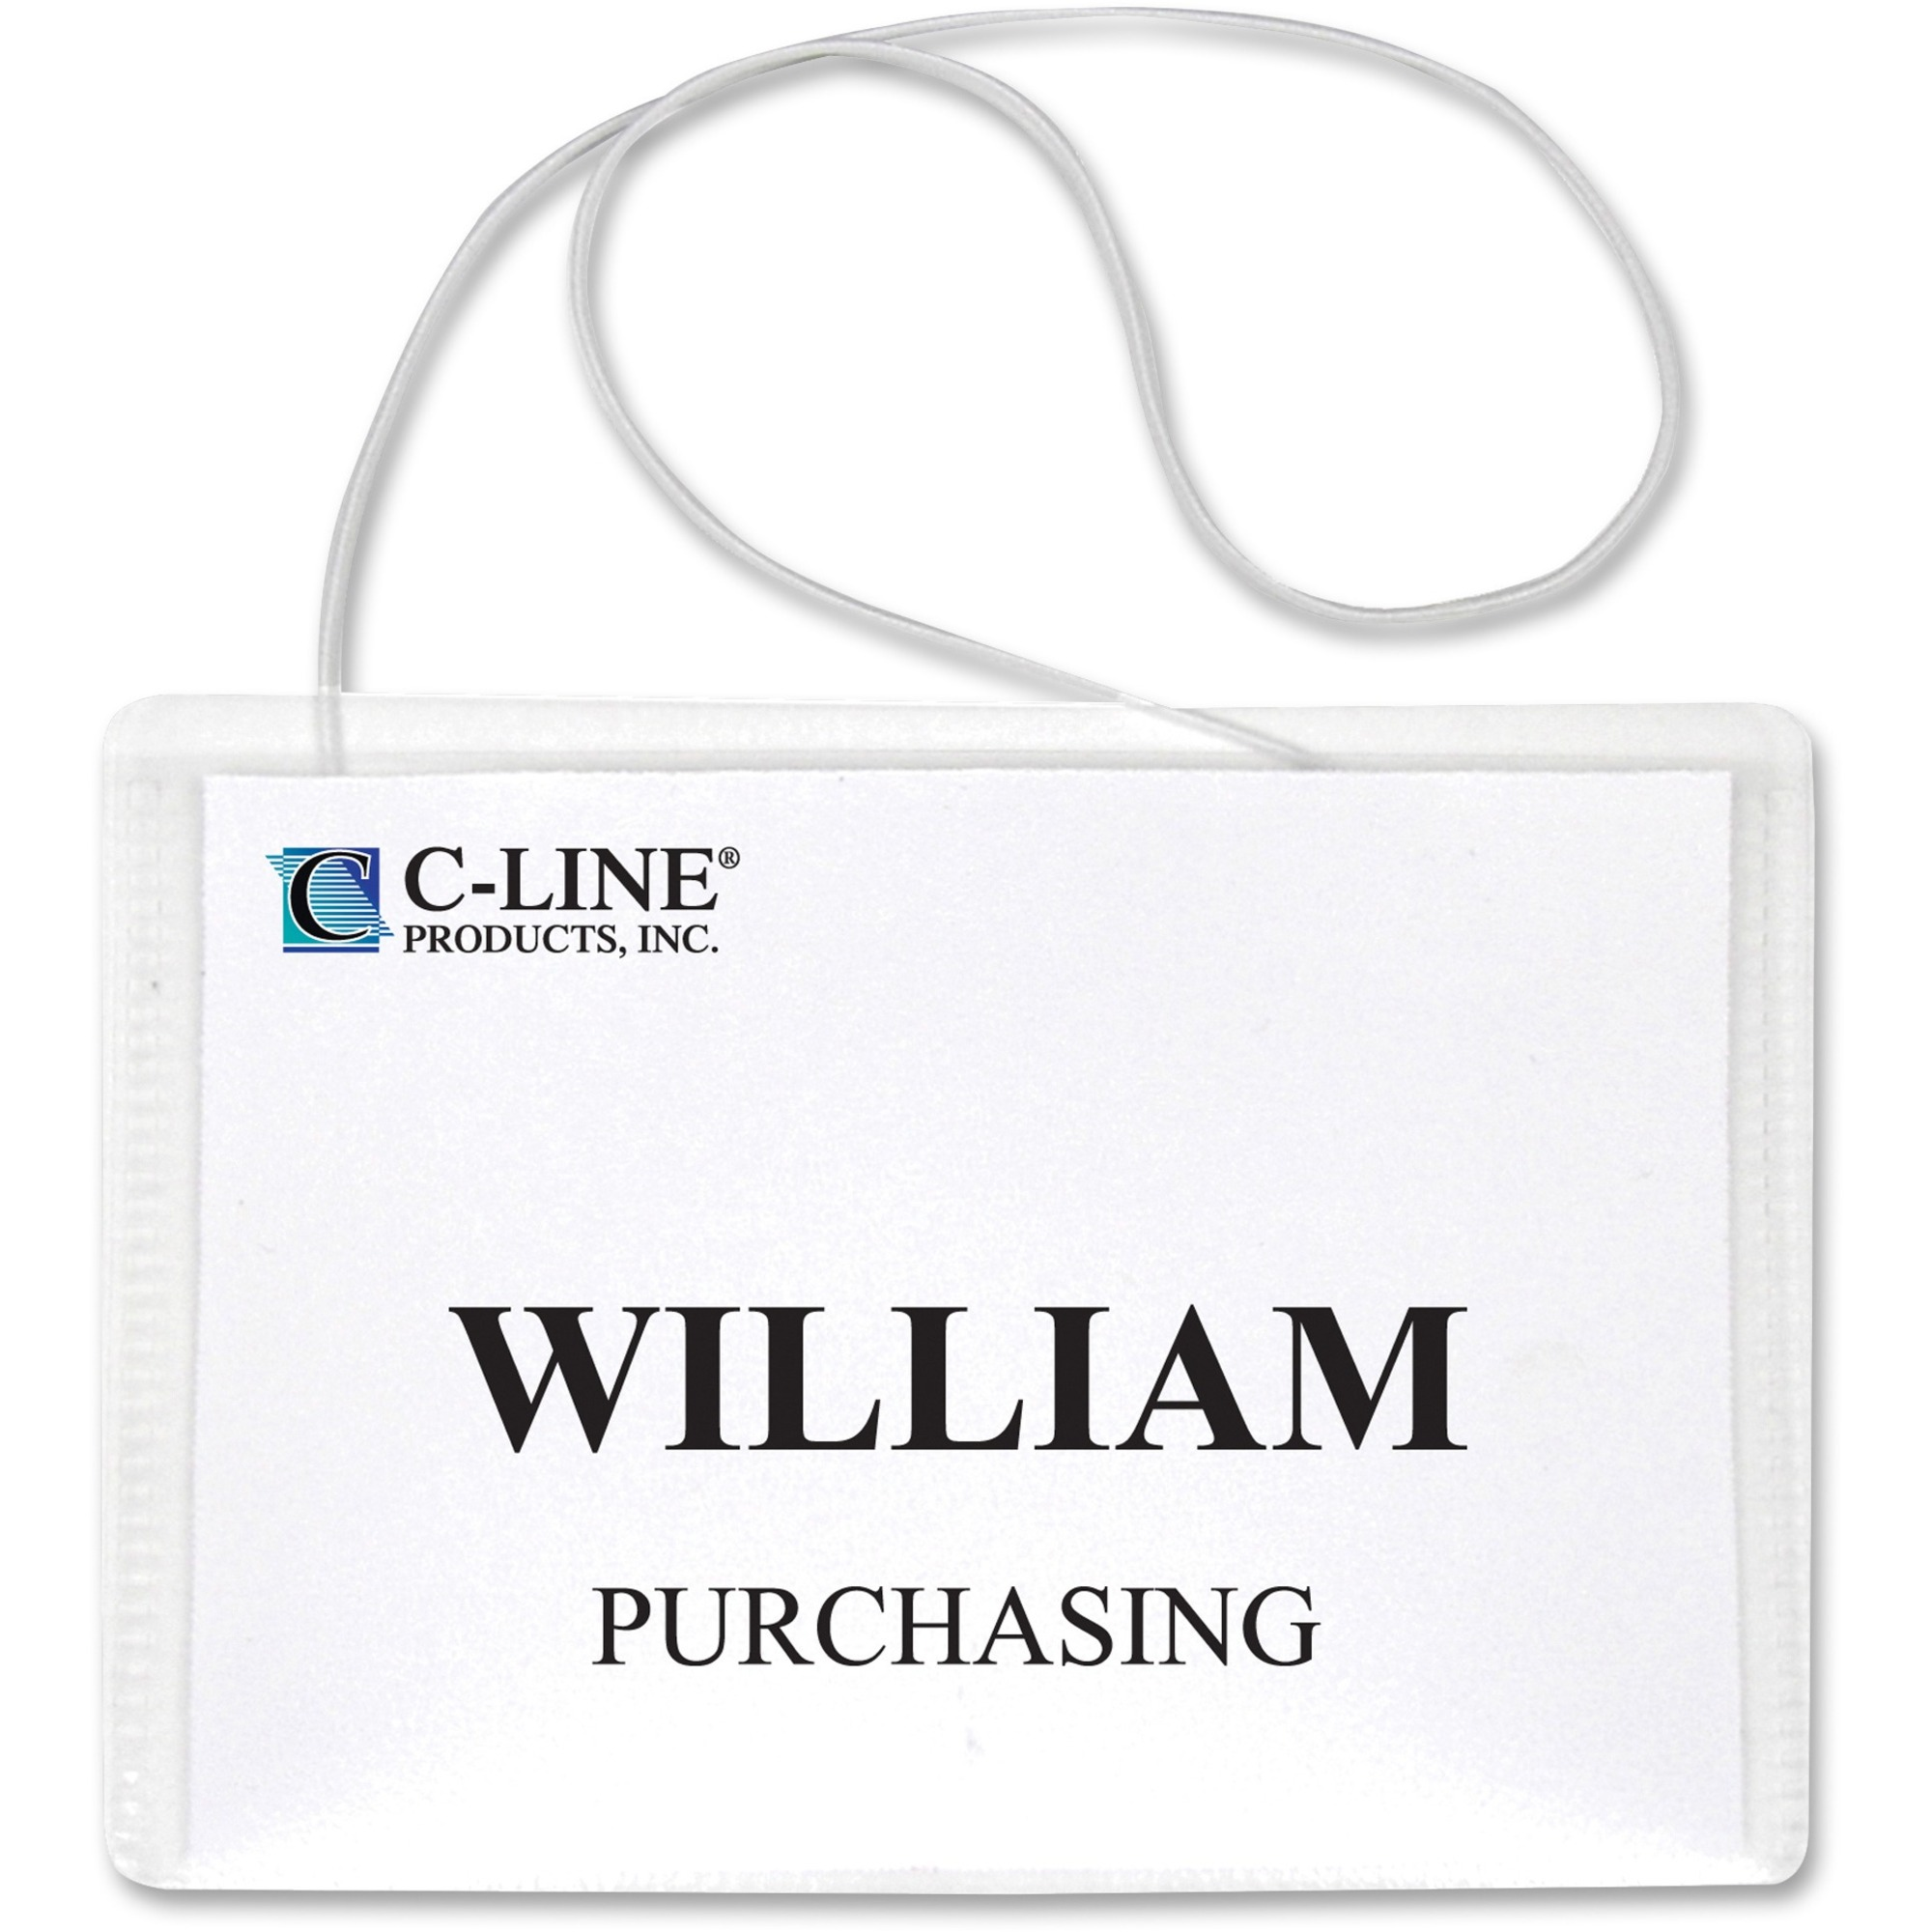 lowest price 1837d 1270f C-Line Hanging Style Name Badge Holders - 3